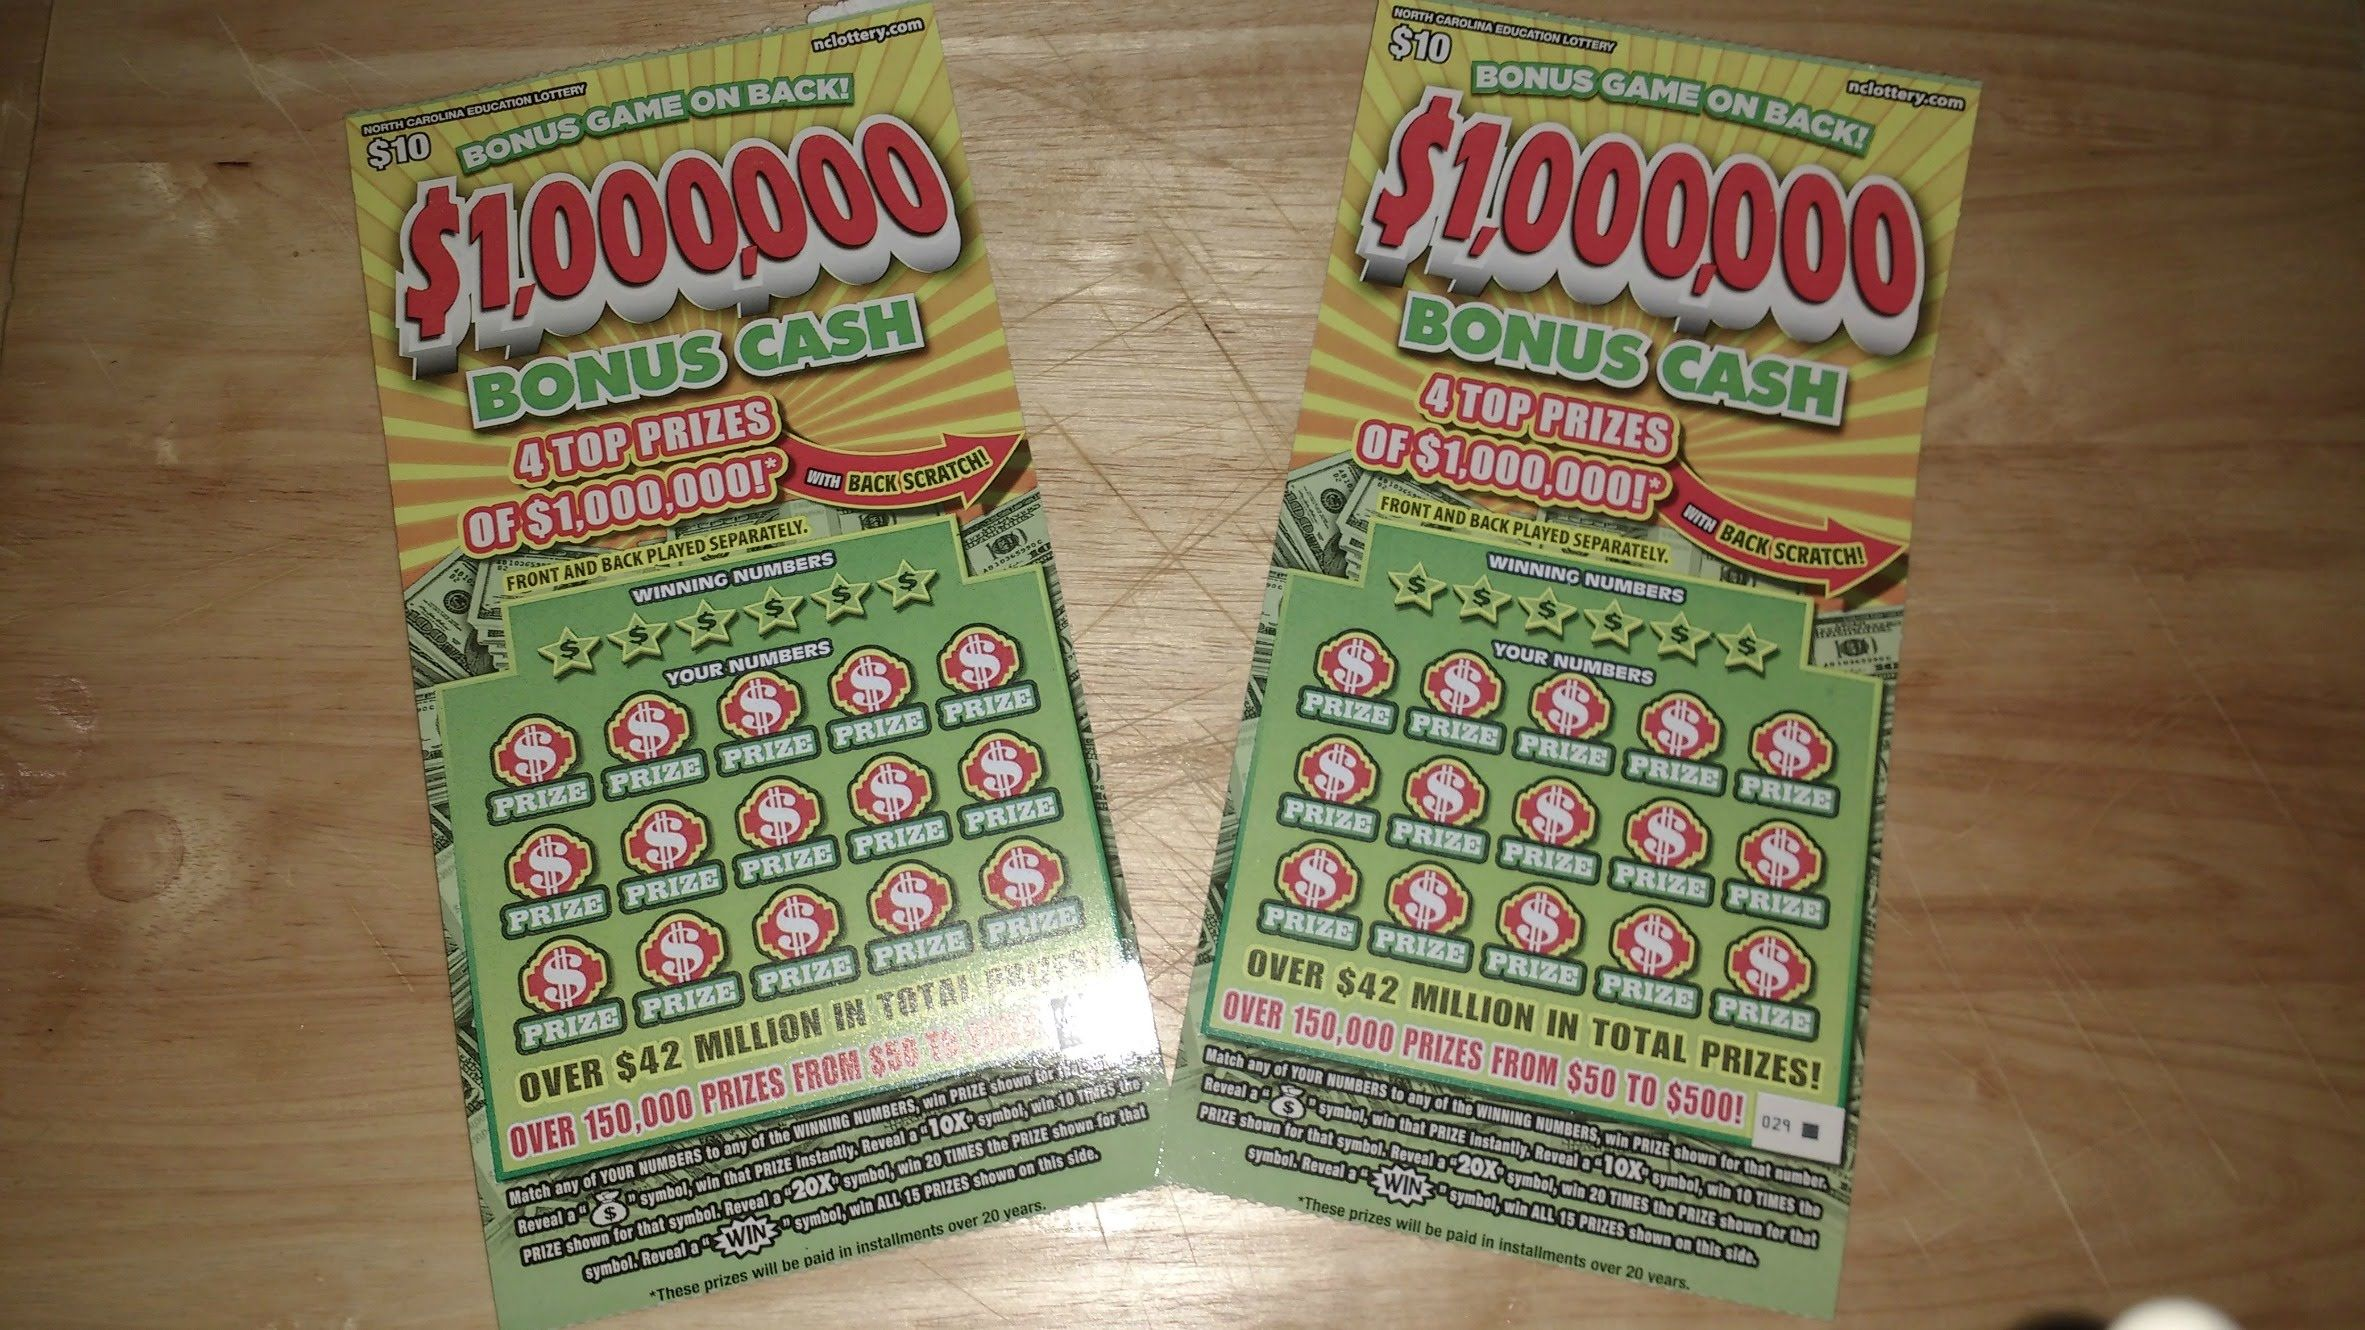 $1,000,000 Bonus Cash with Back Scratch NC Lottery | Lottery